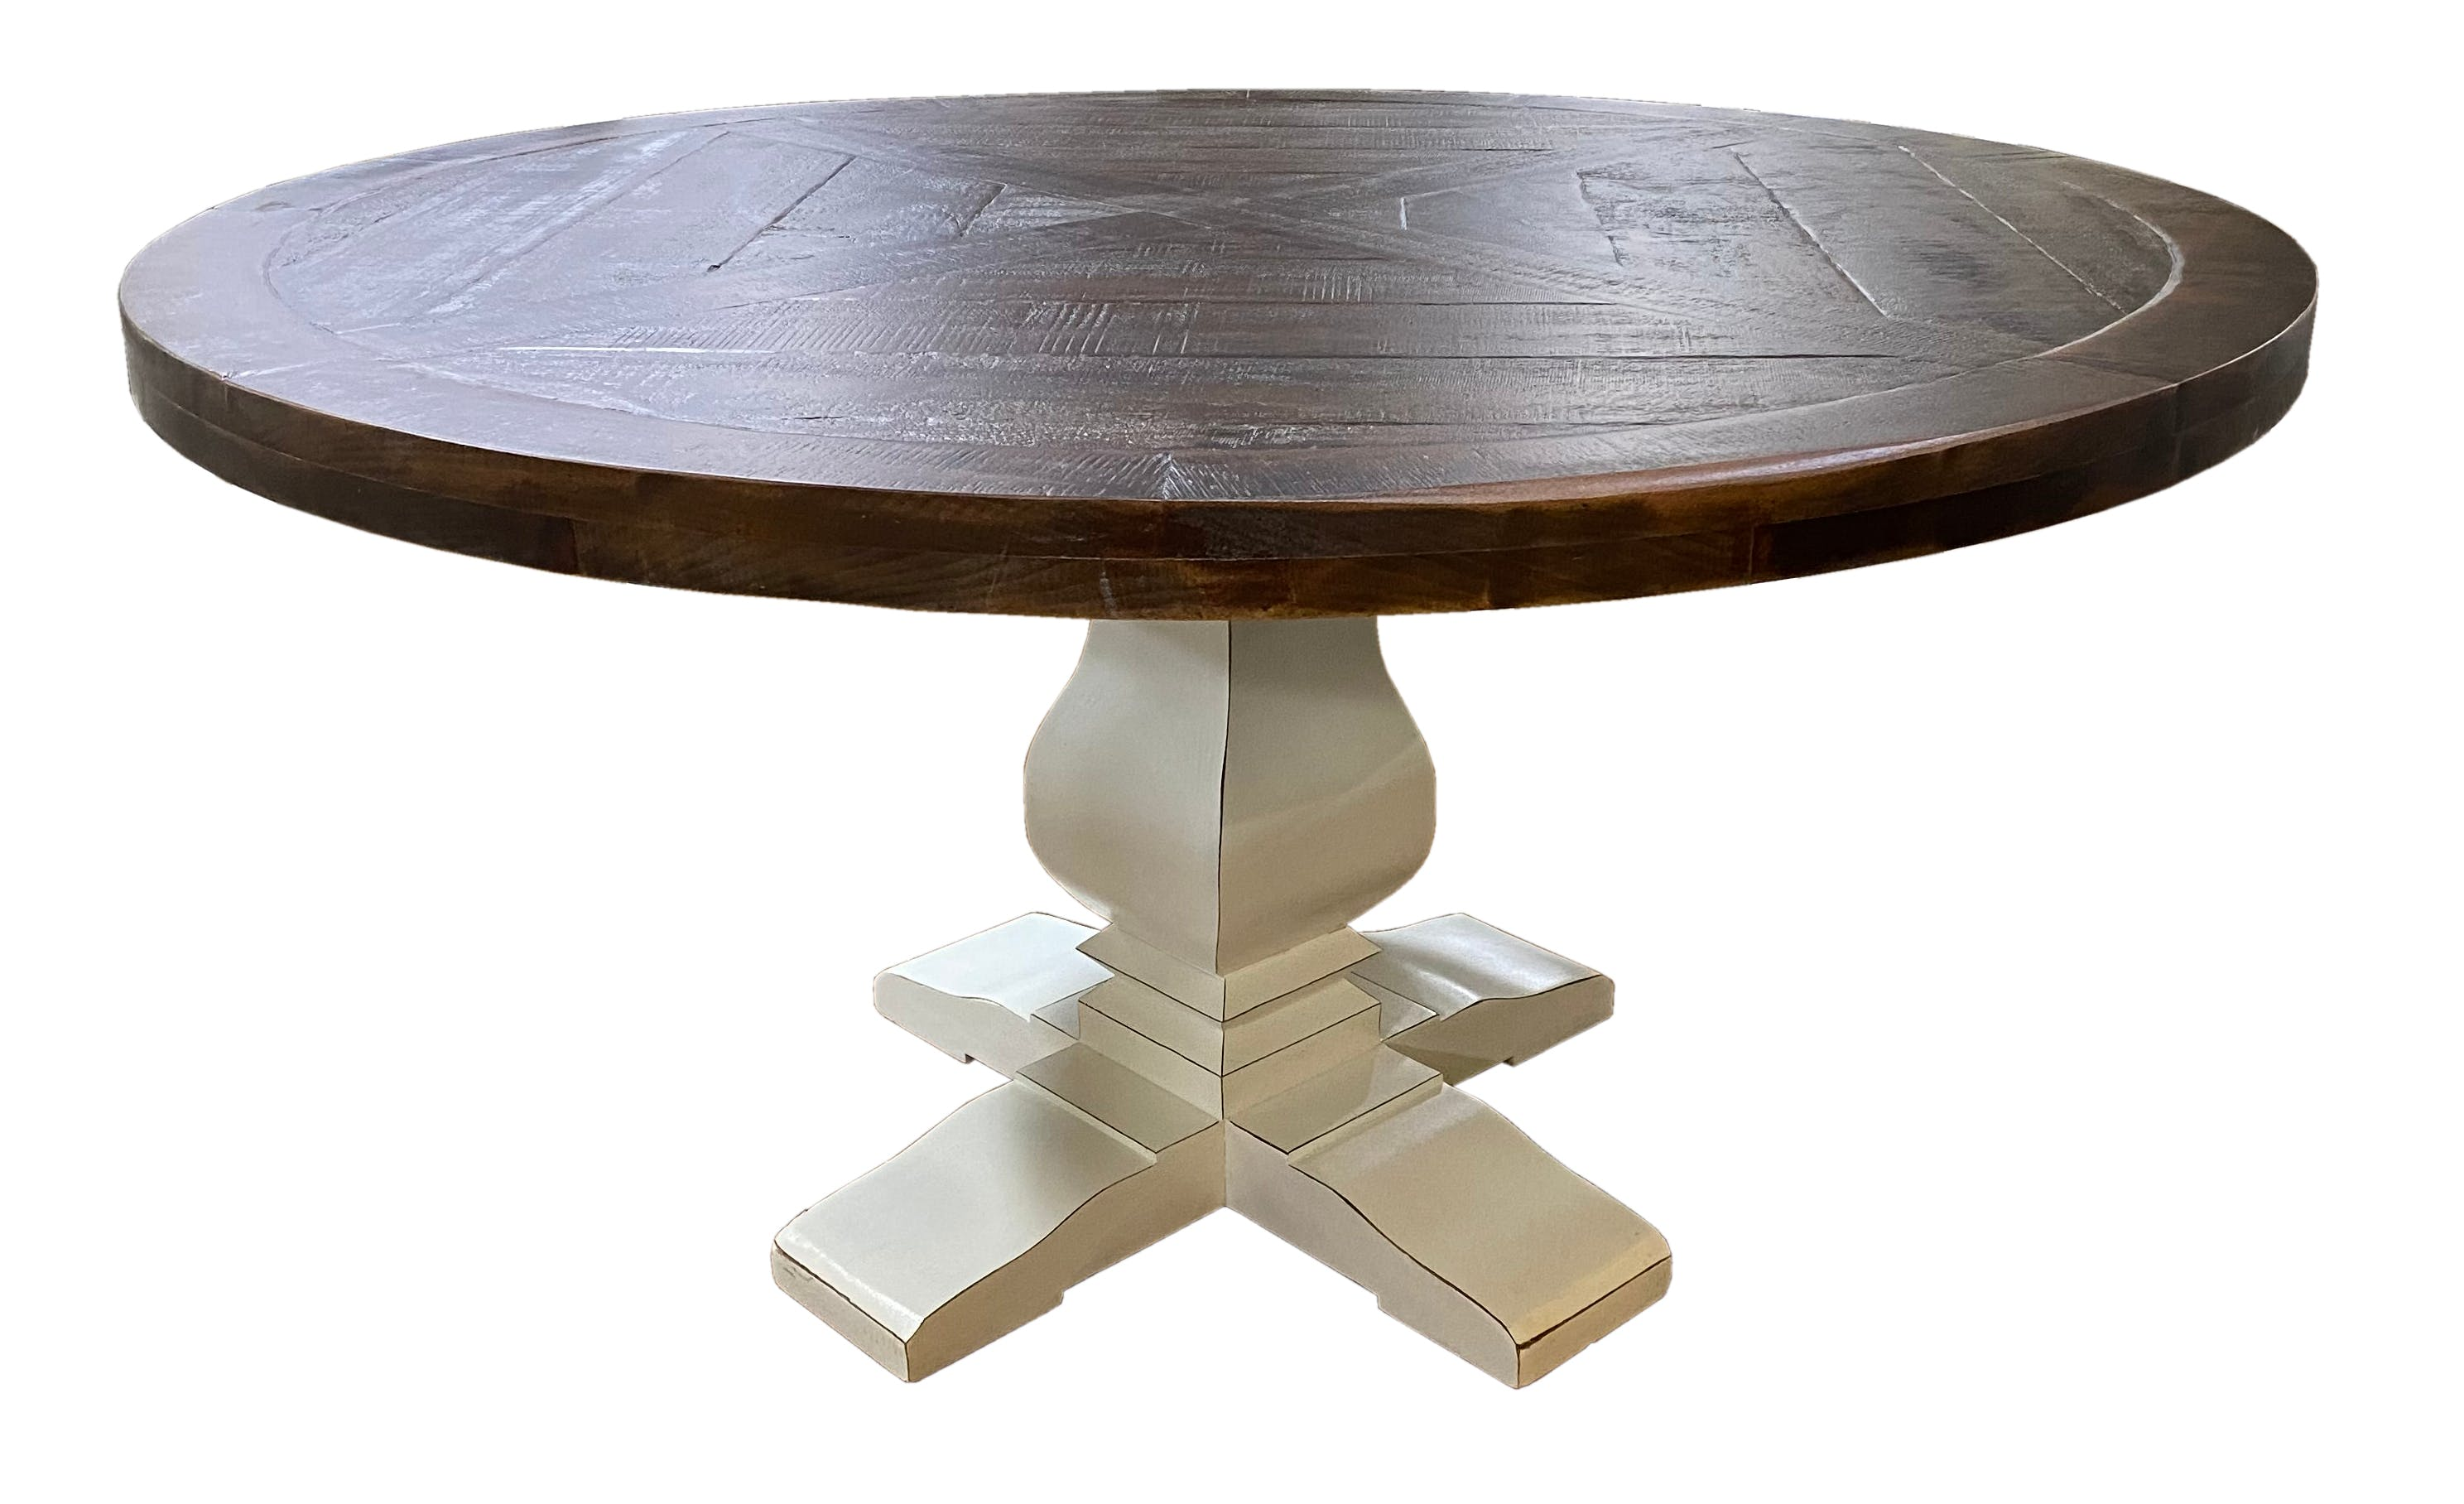 G Dg Mes So 60 Jw 60 Round Dining Table With Single Pedestal